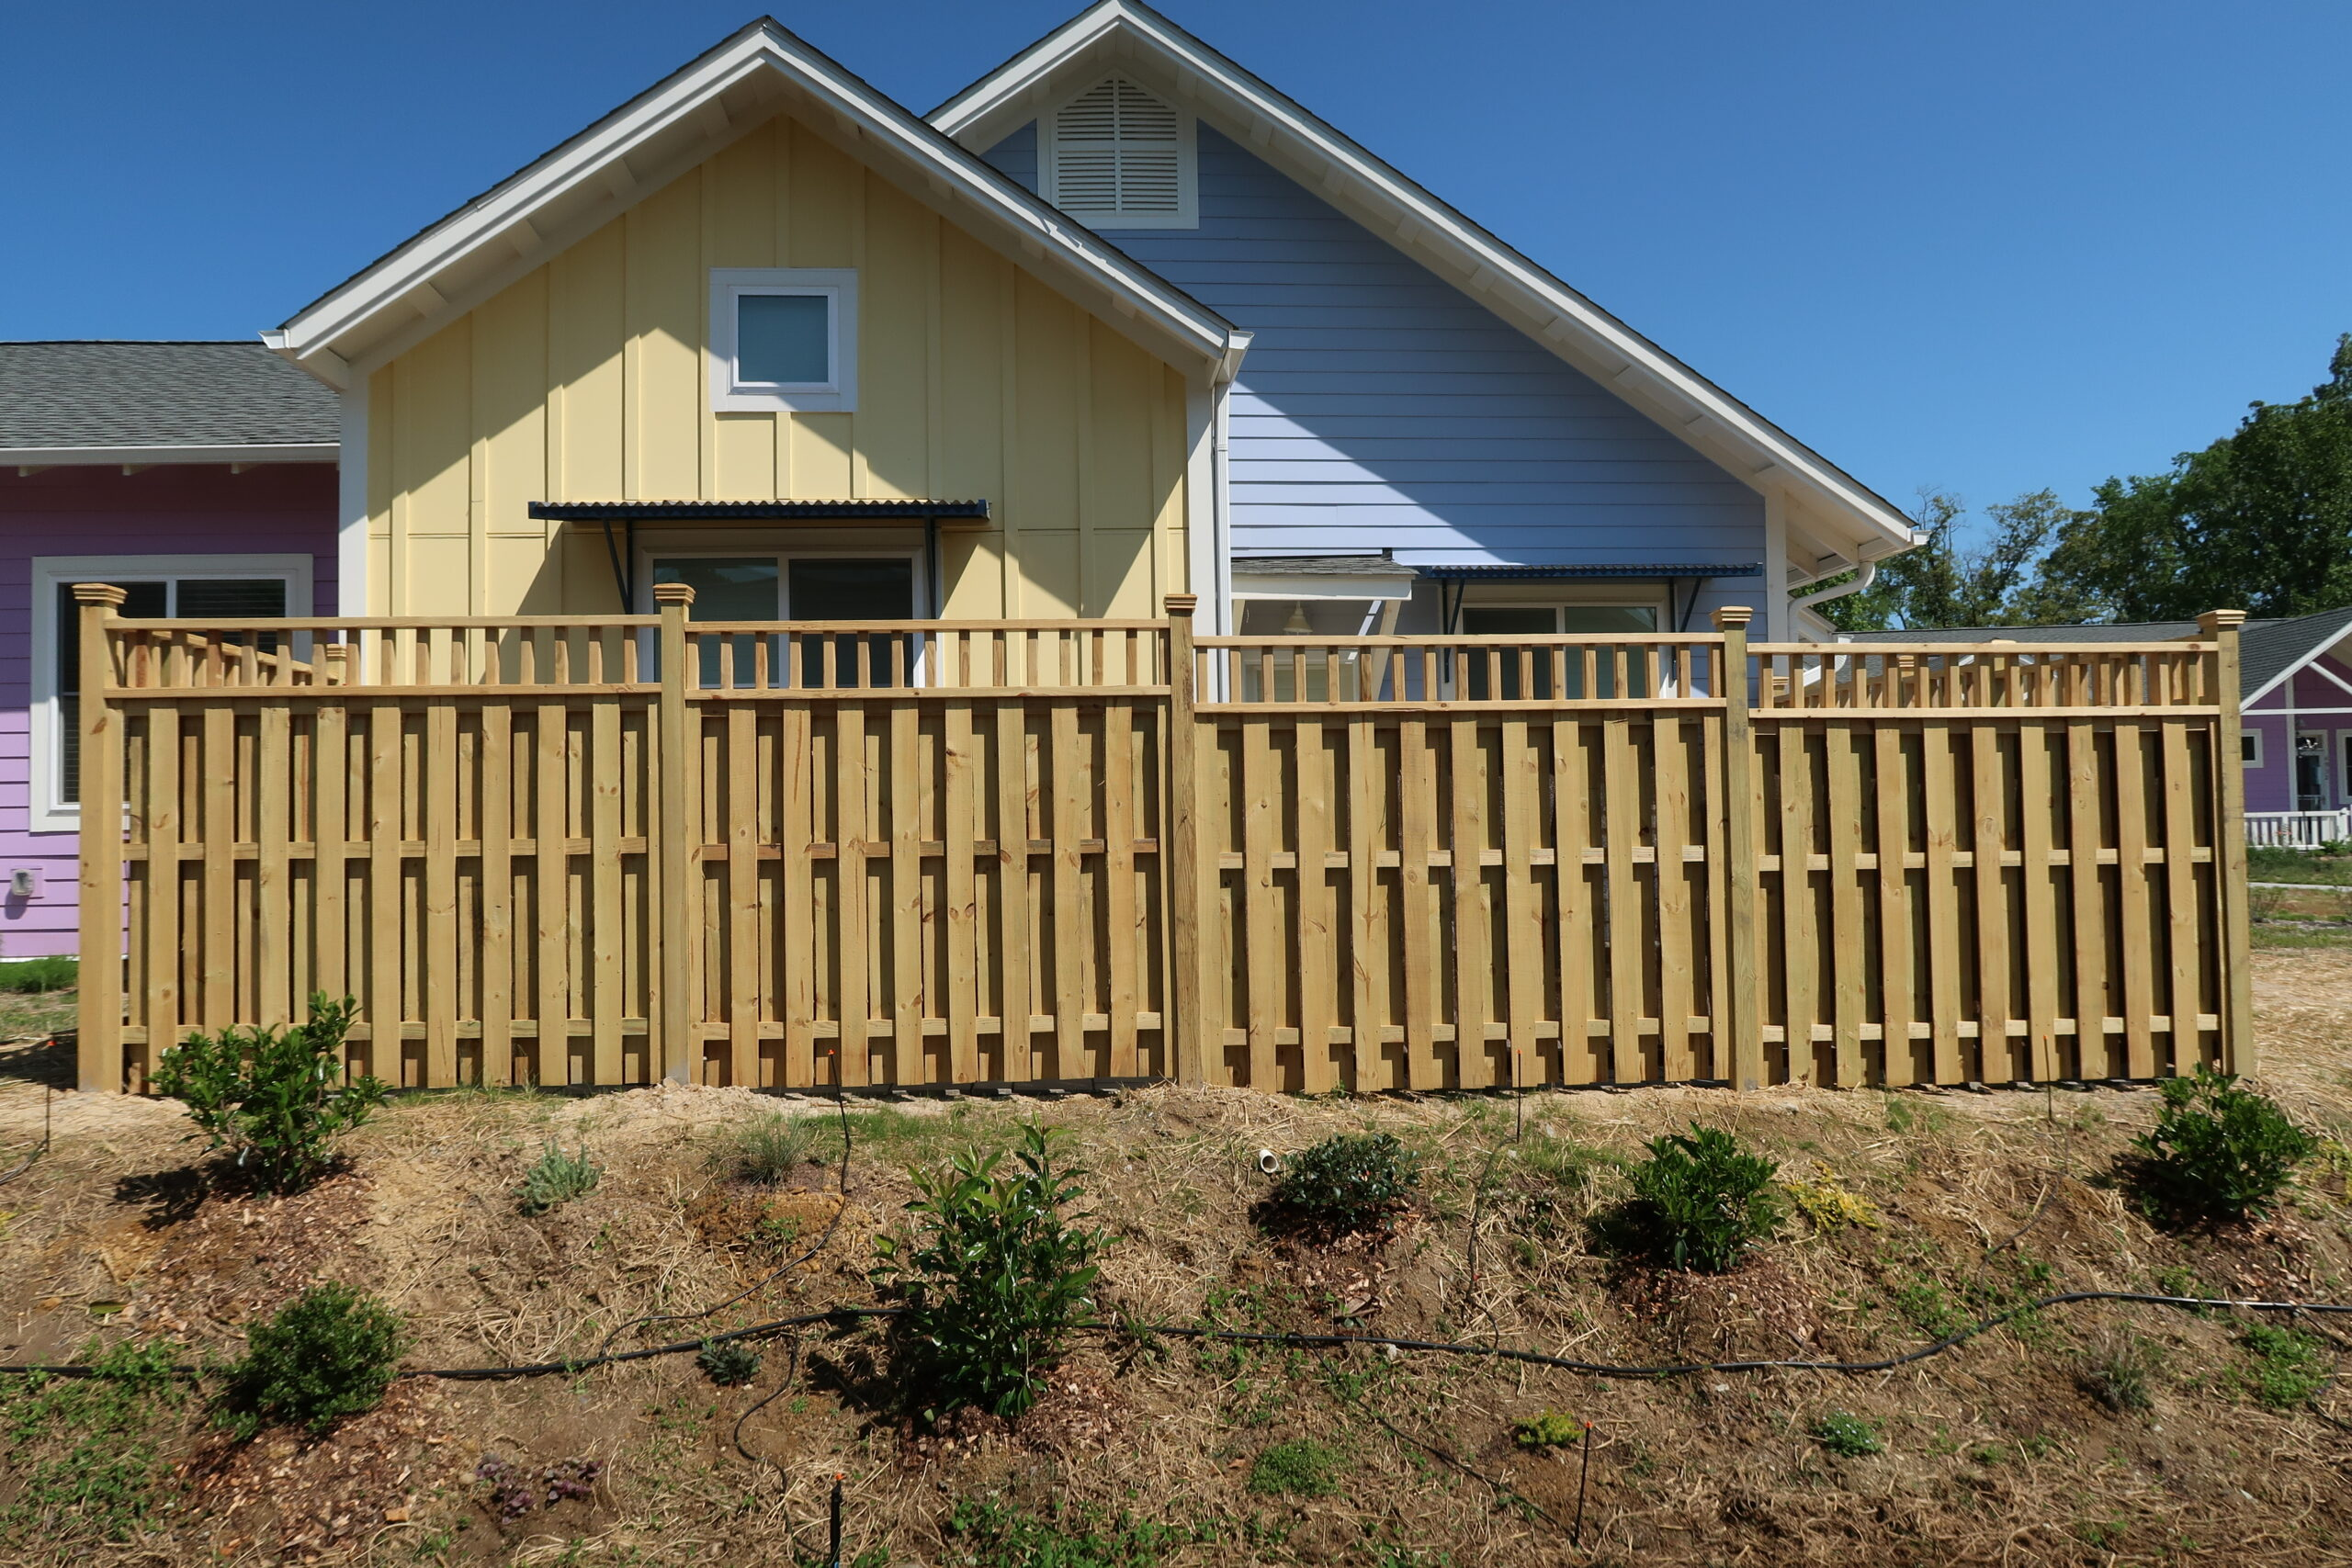 Accent on Top of Fencing